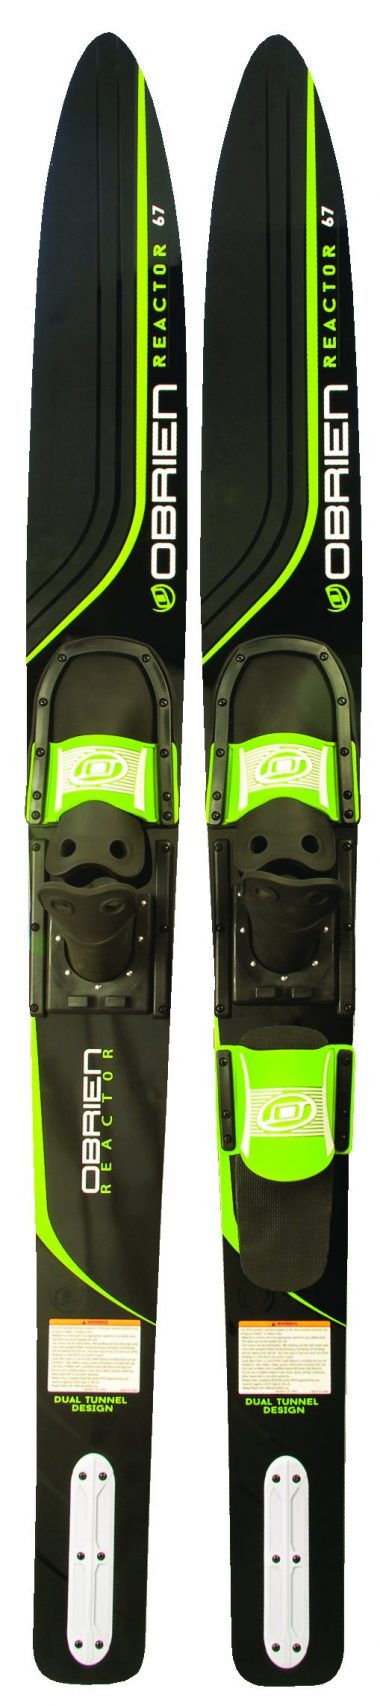 O'Brien Reactor Combo Bindings Water Skis